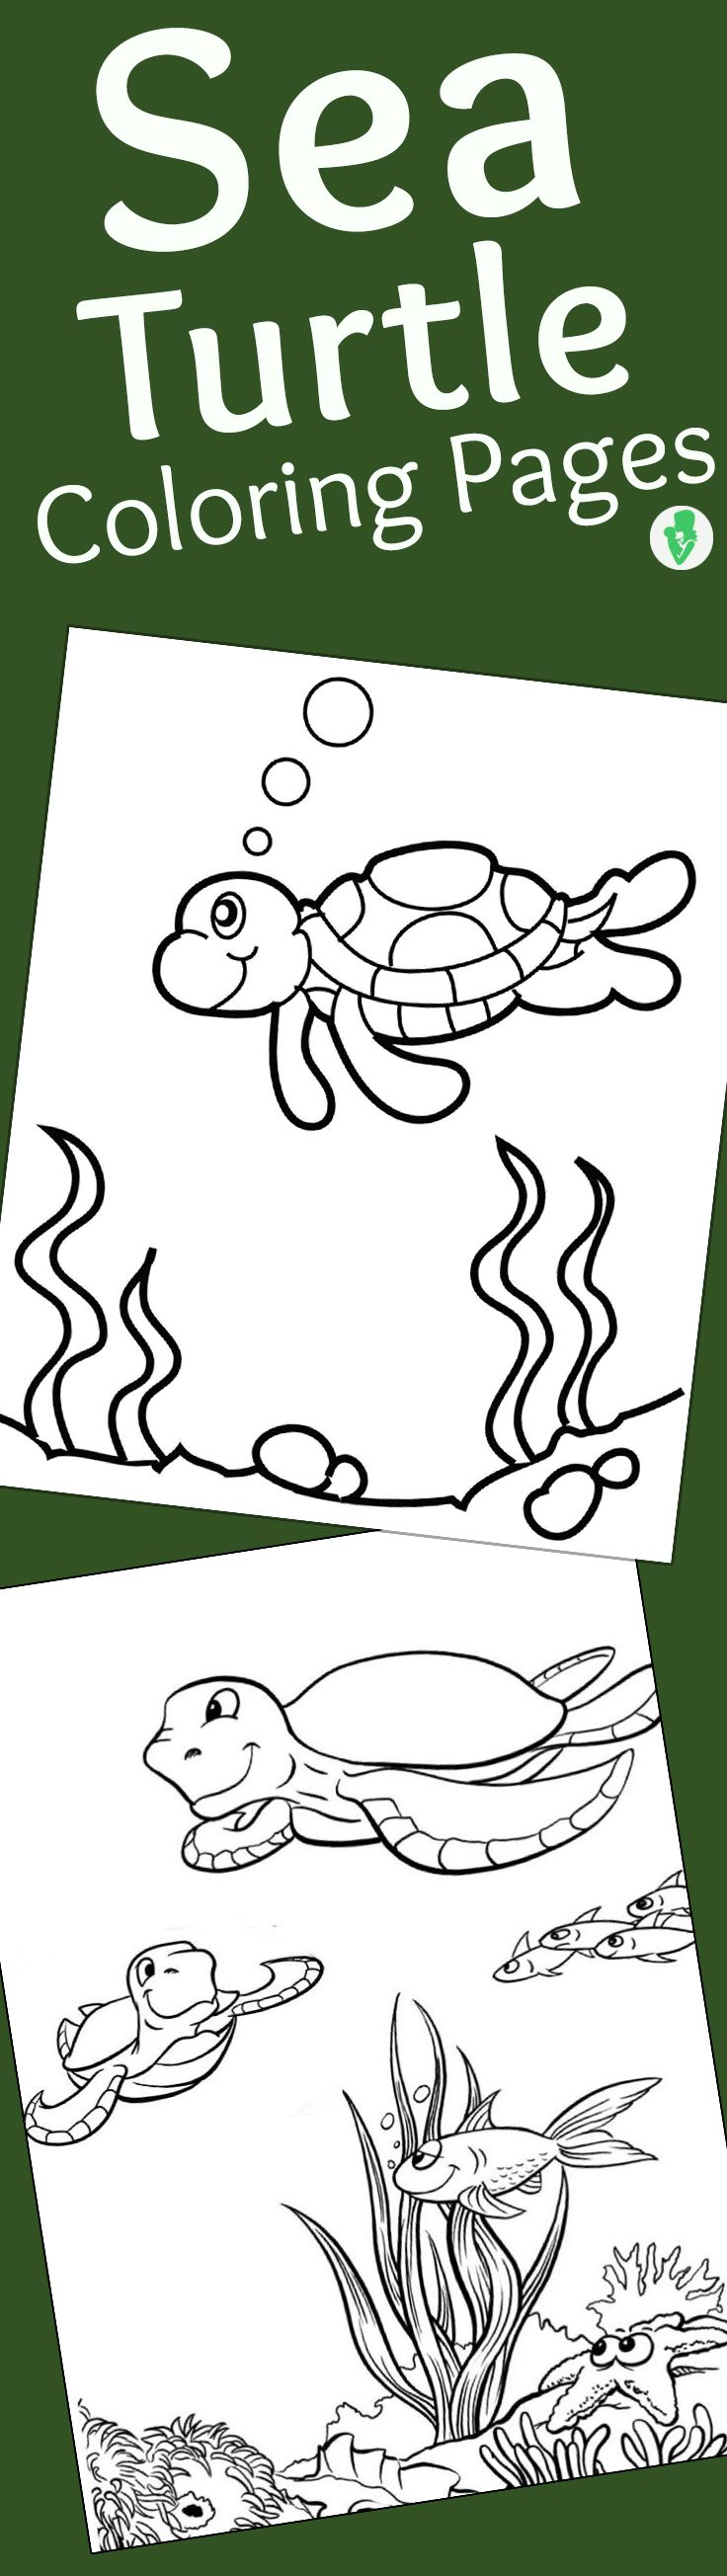 top 10 free printable cute sea turtle coloring pages online sea